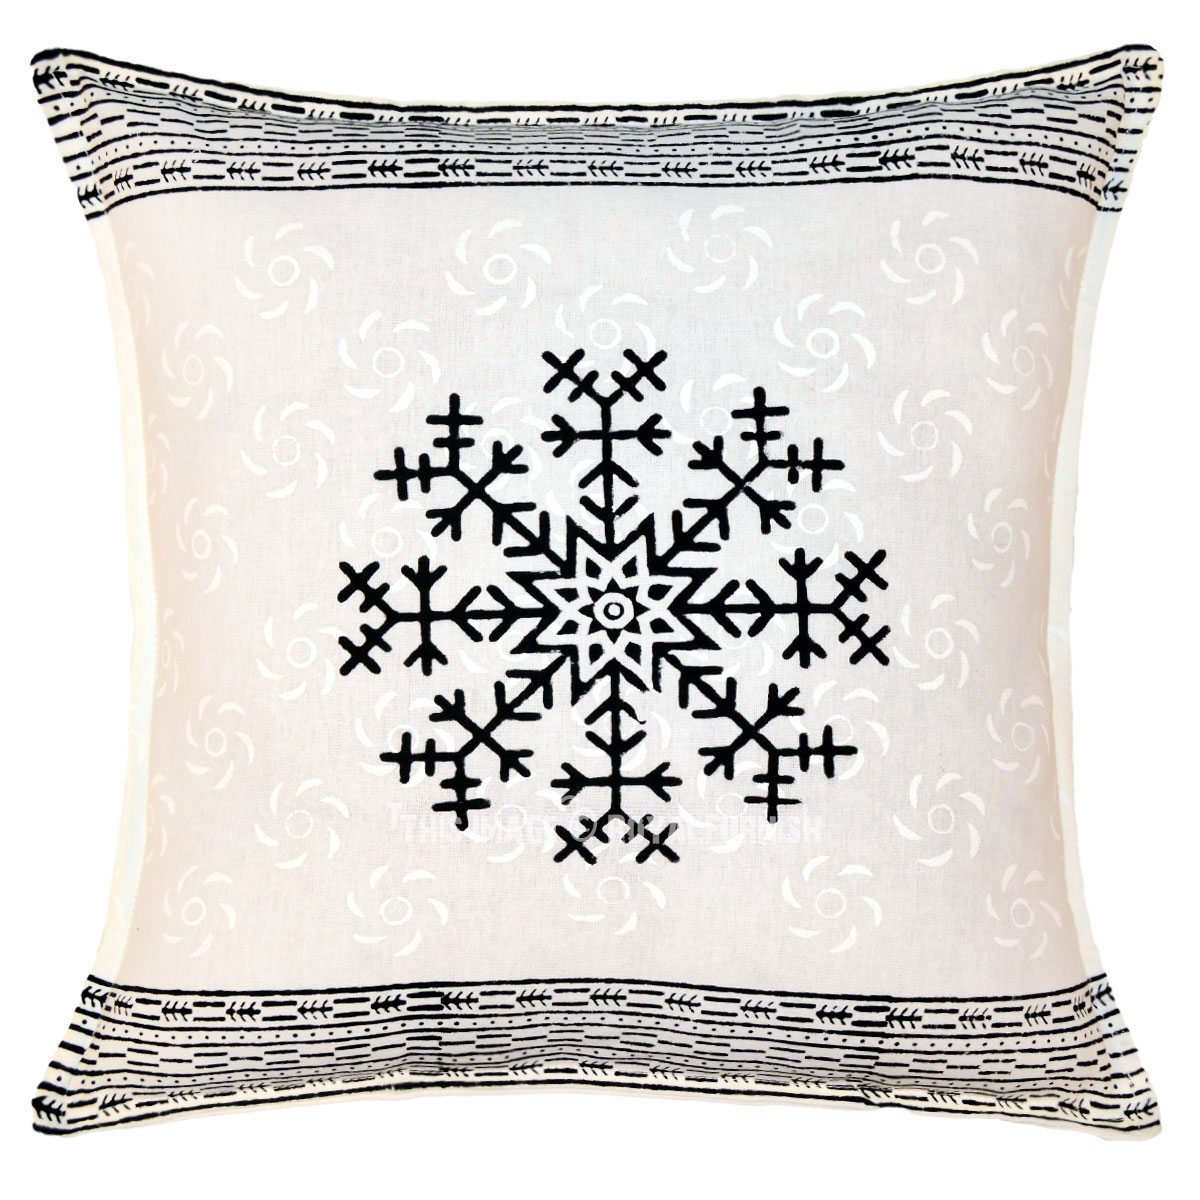 White & Black Star Hand Block Printed Decorative Pillow Sham 16 Inch - RoyalFurnish.com